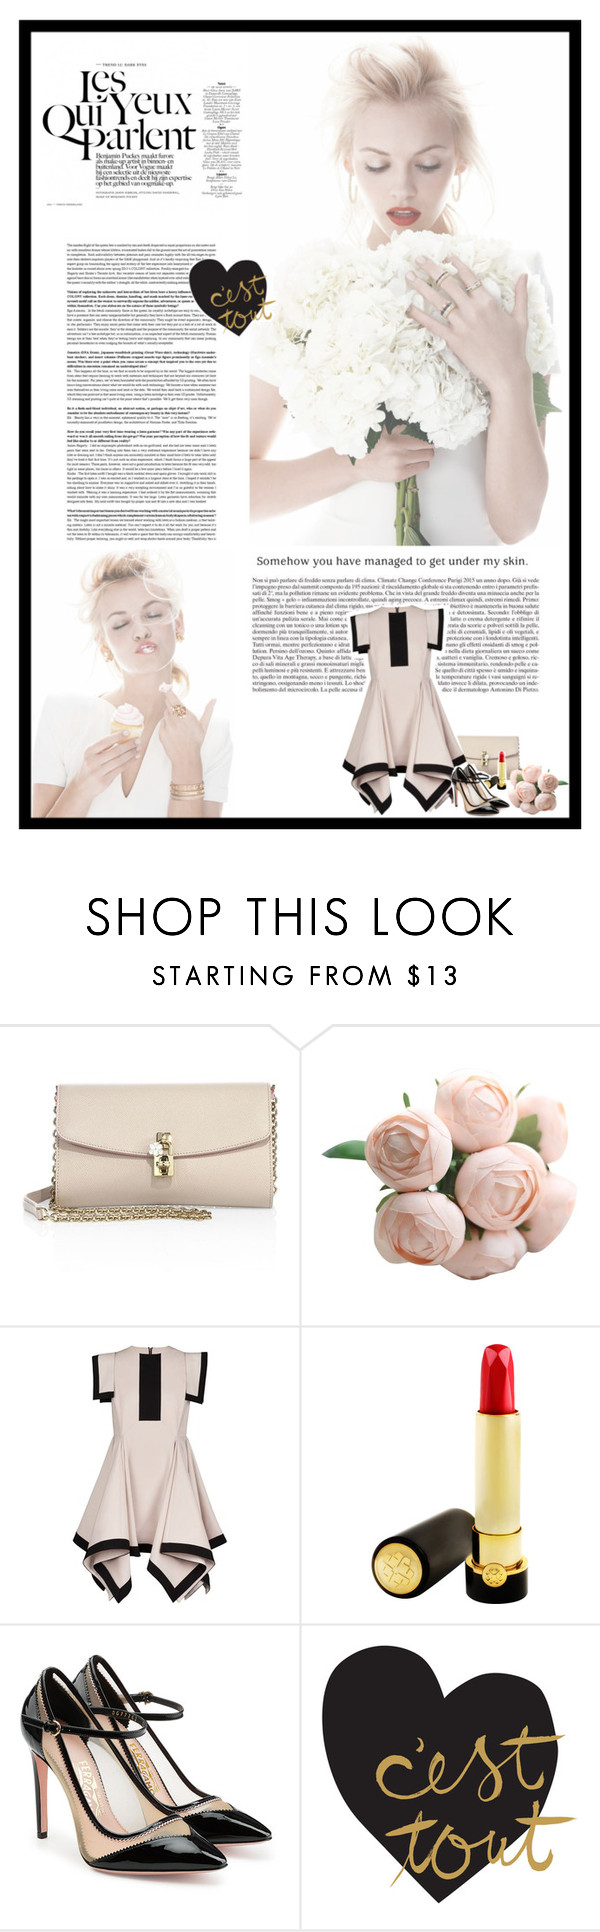 """""""les yeux qui parlent"""" by slowlycommittingsin ❤ liked on Polyvore featuring GINTA, Dolce&Gabbana, Tatcha and Salvatore Ferragamo"""